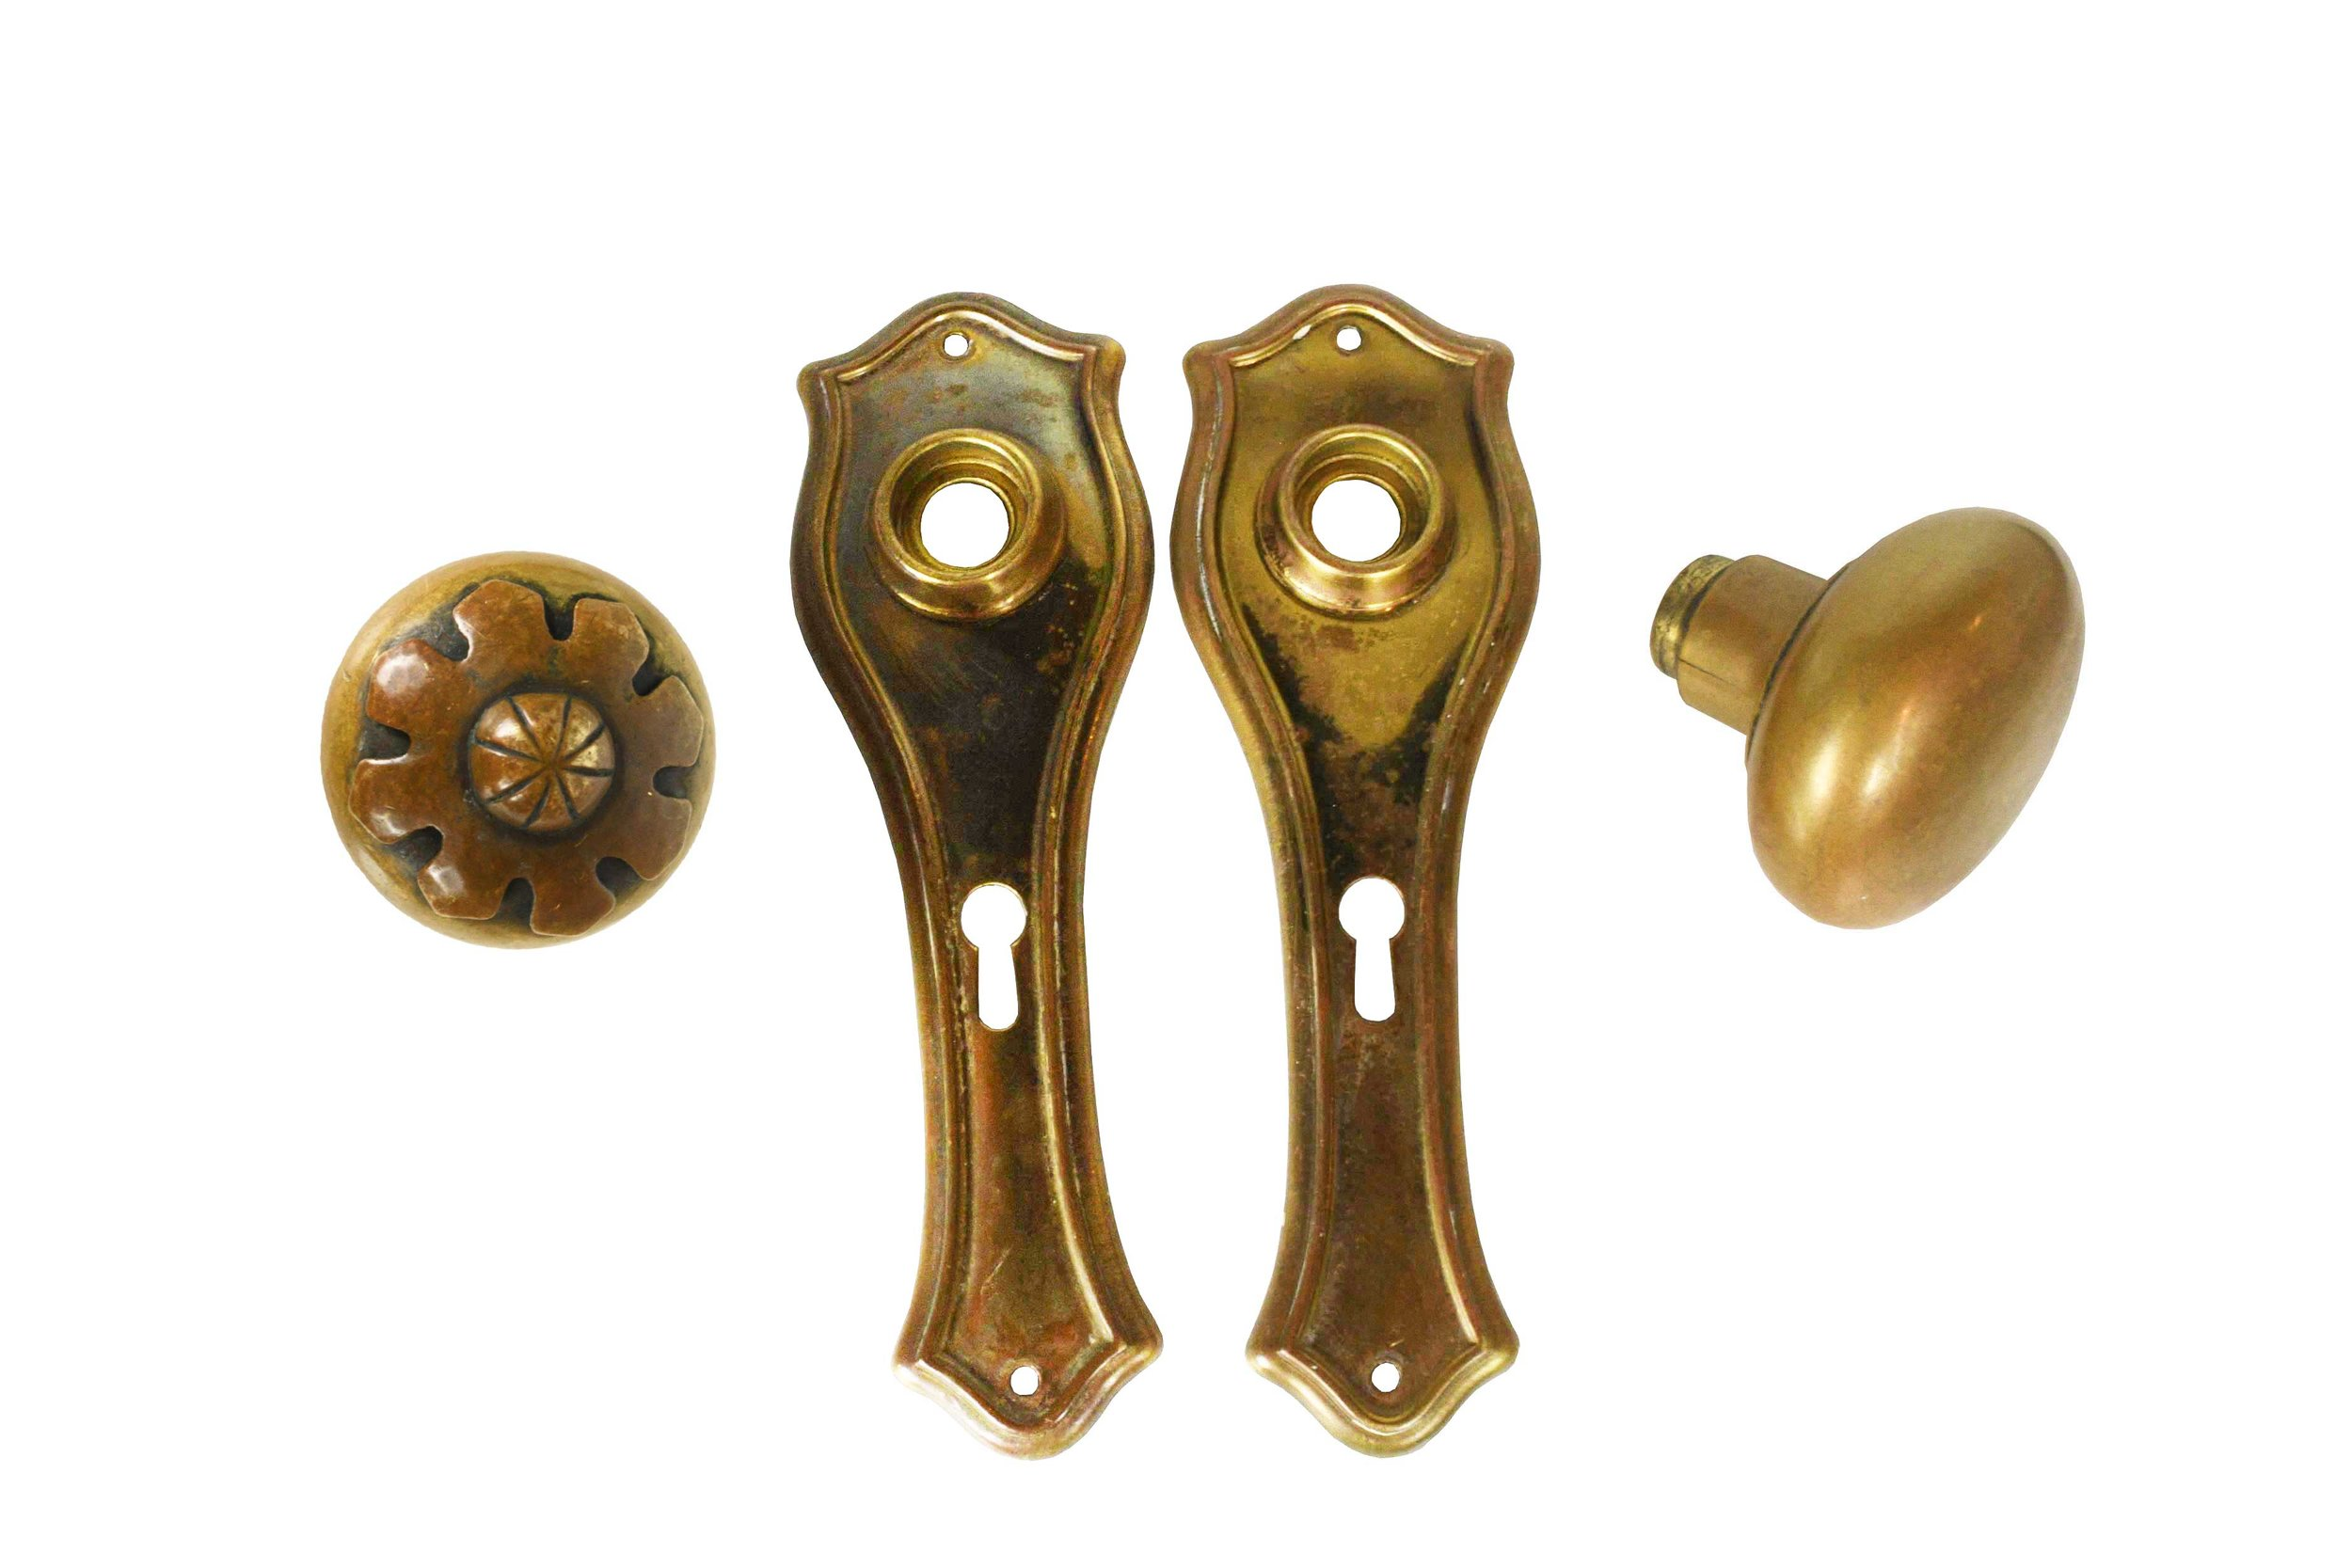 BRASS HARDWARE SET WITH CAST BRASS FLORAL KNOB AA#H20224   1 set available $140.00 for set